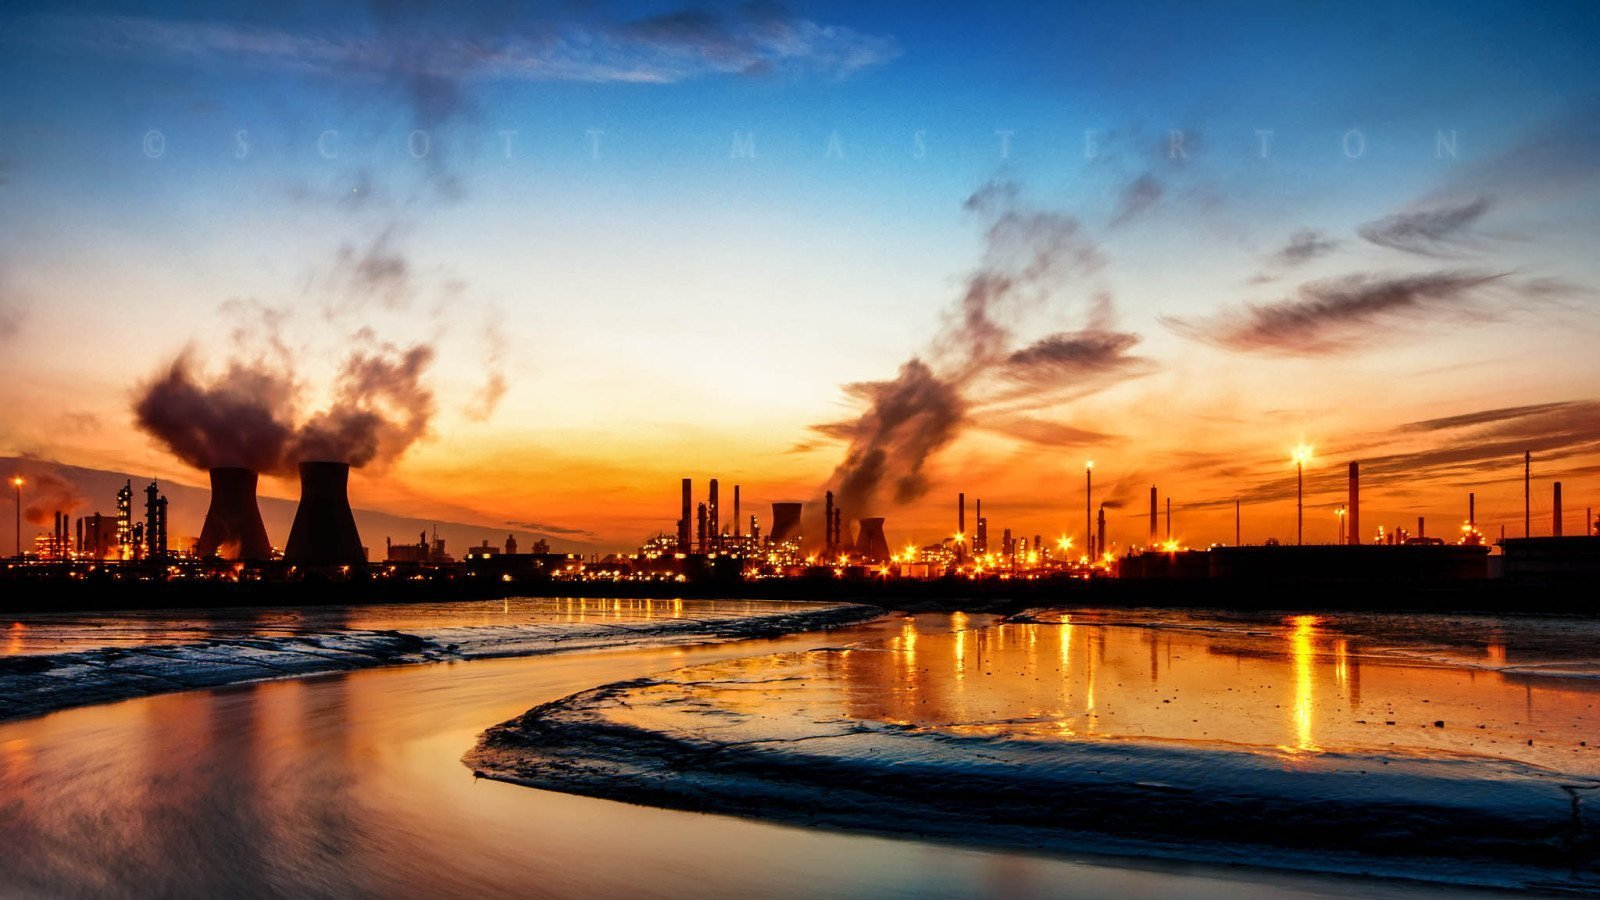 Black Gold an image of an Oil Refinery by Scott Masterton